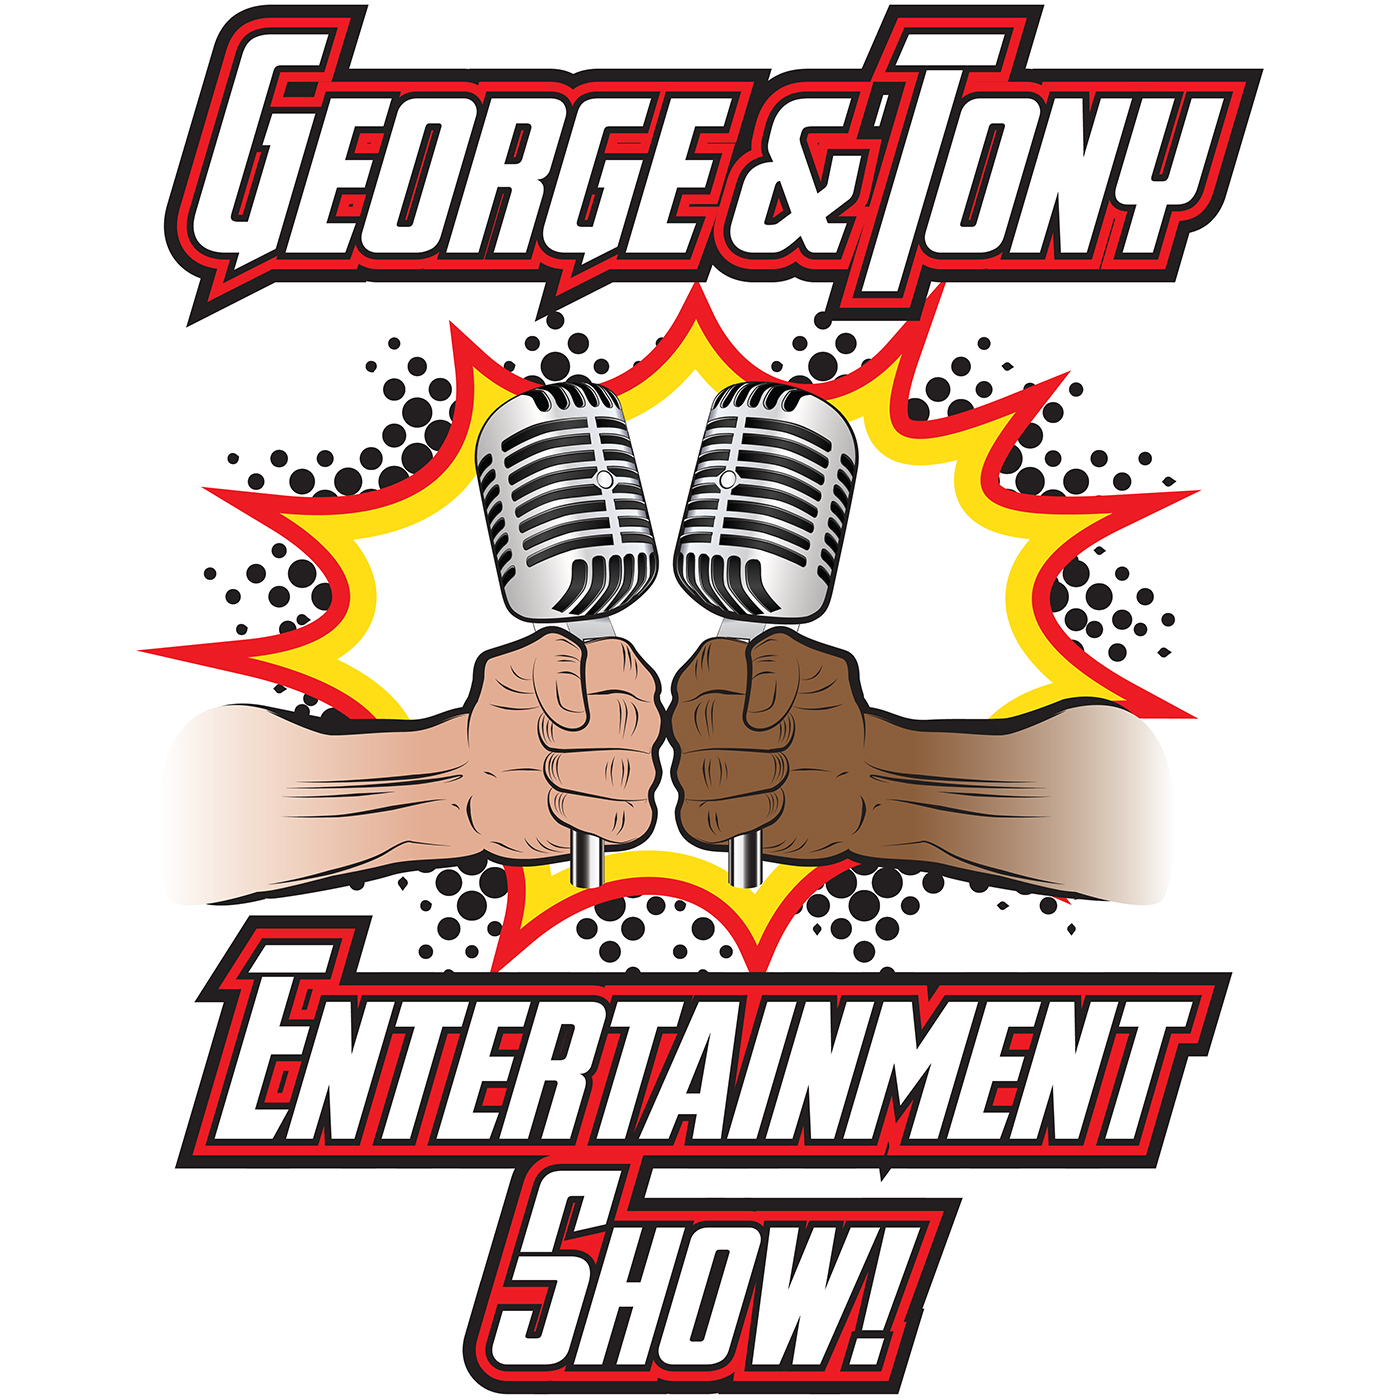 George and Tony Entertainment Show #133